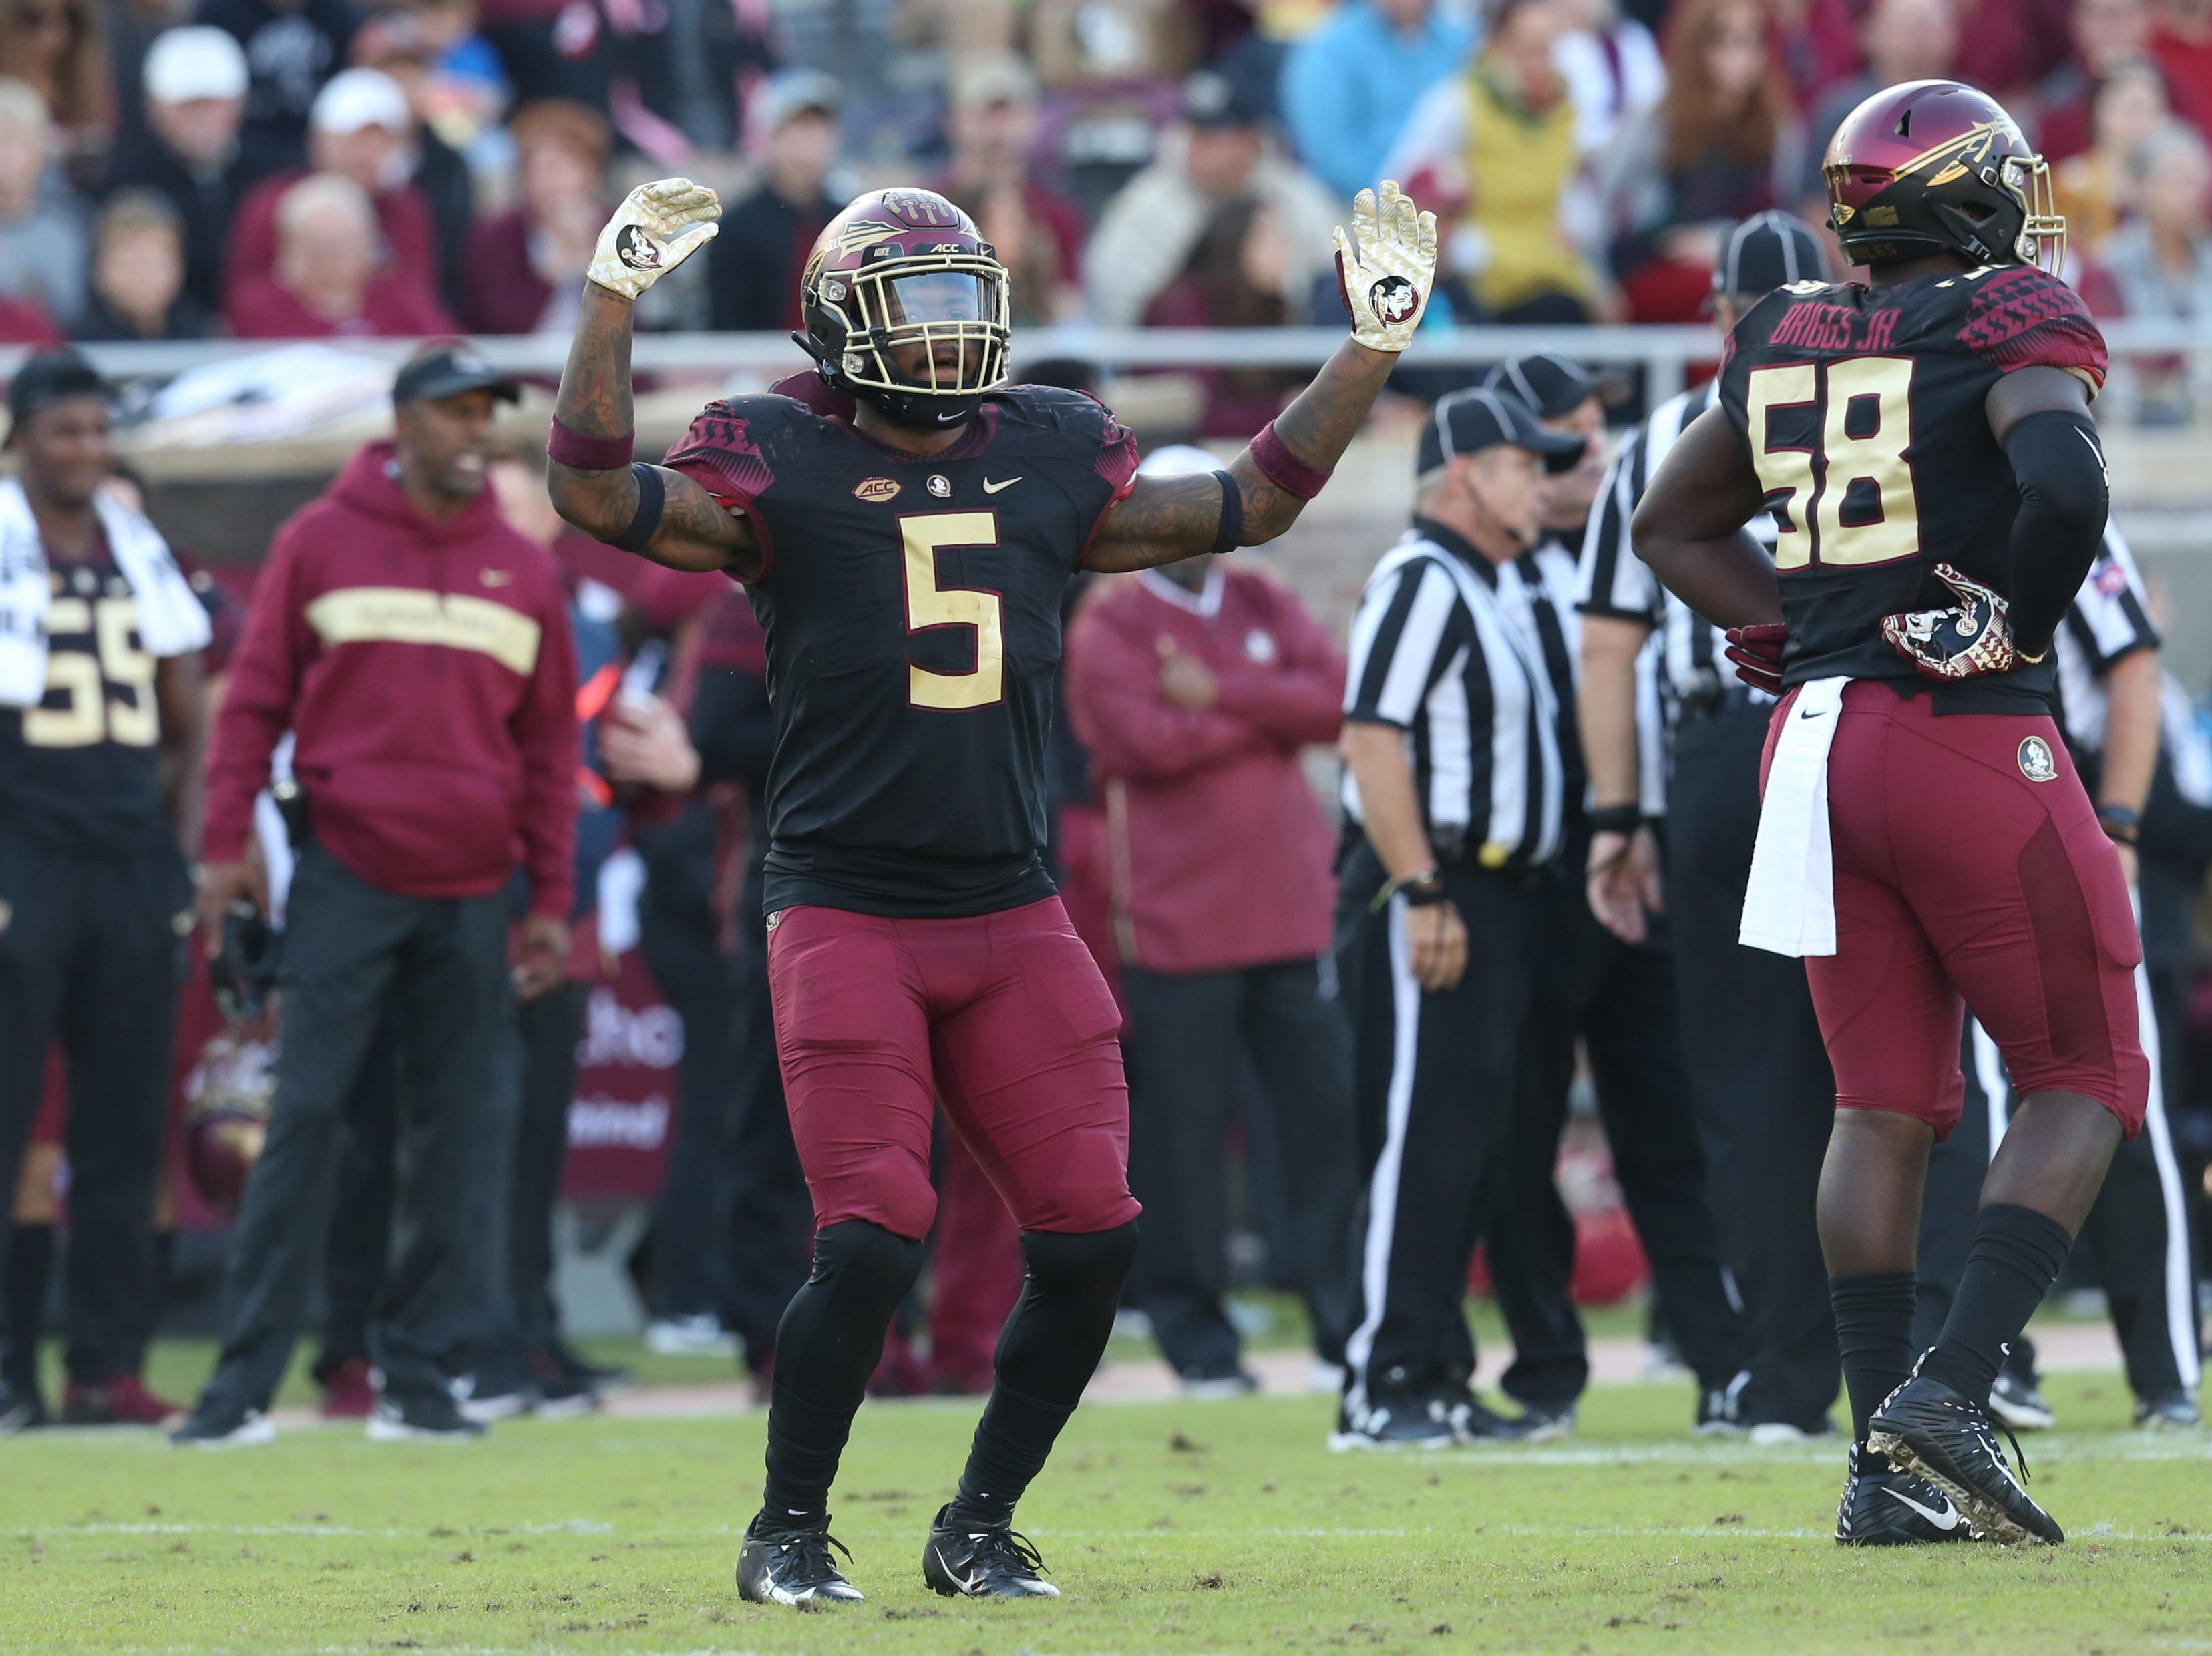 Florida State Seminoles linebacker Dontavious Jackson (5) pumps up the crowd as the Florida State Seminoles face off against the Boston College Eagles at Doak S. Campbell Stadium, Saturday, Nov. 17, 2018.